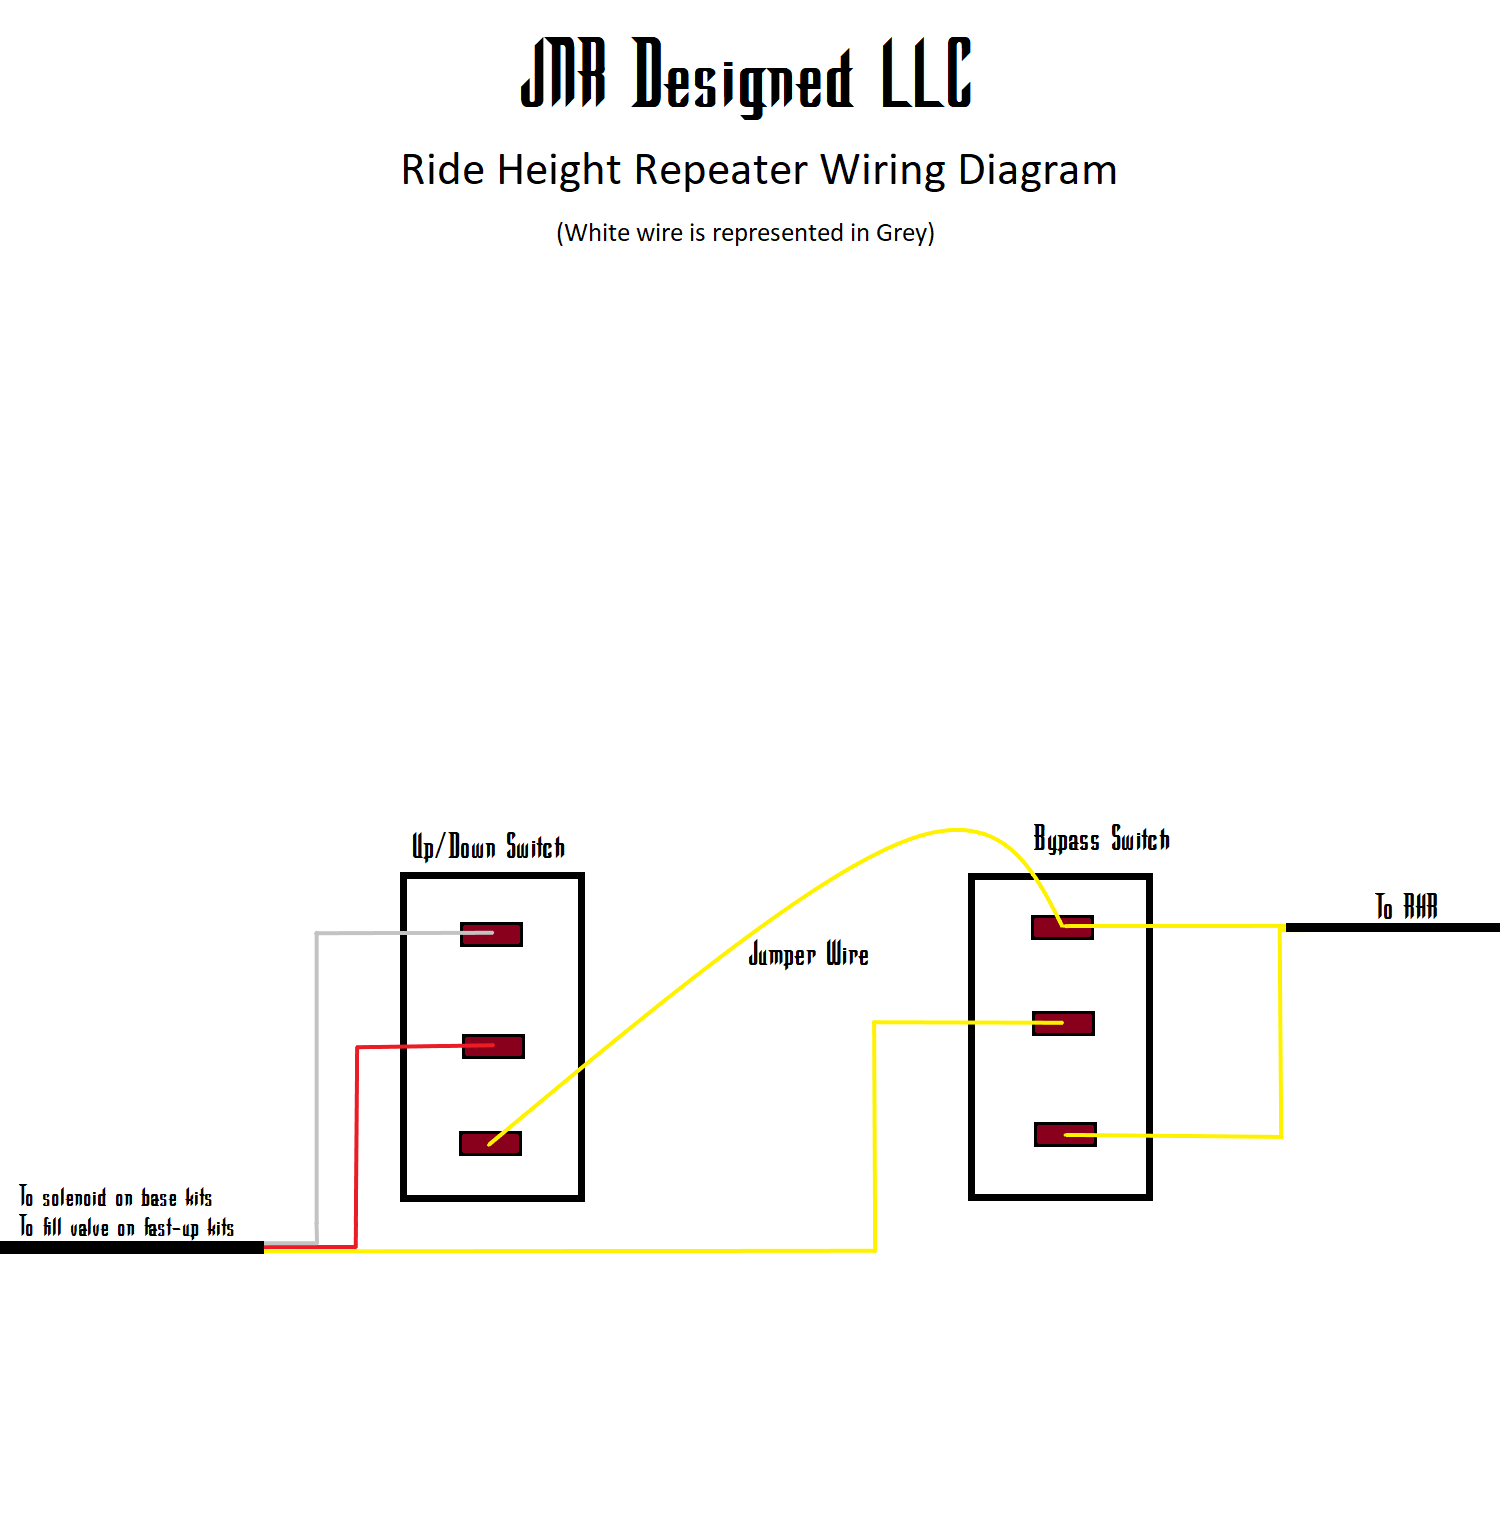 jnr designed standard ride height repeater wiring diagram